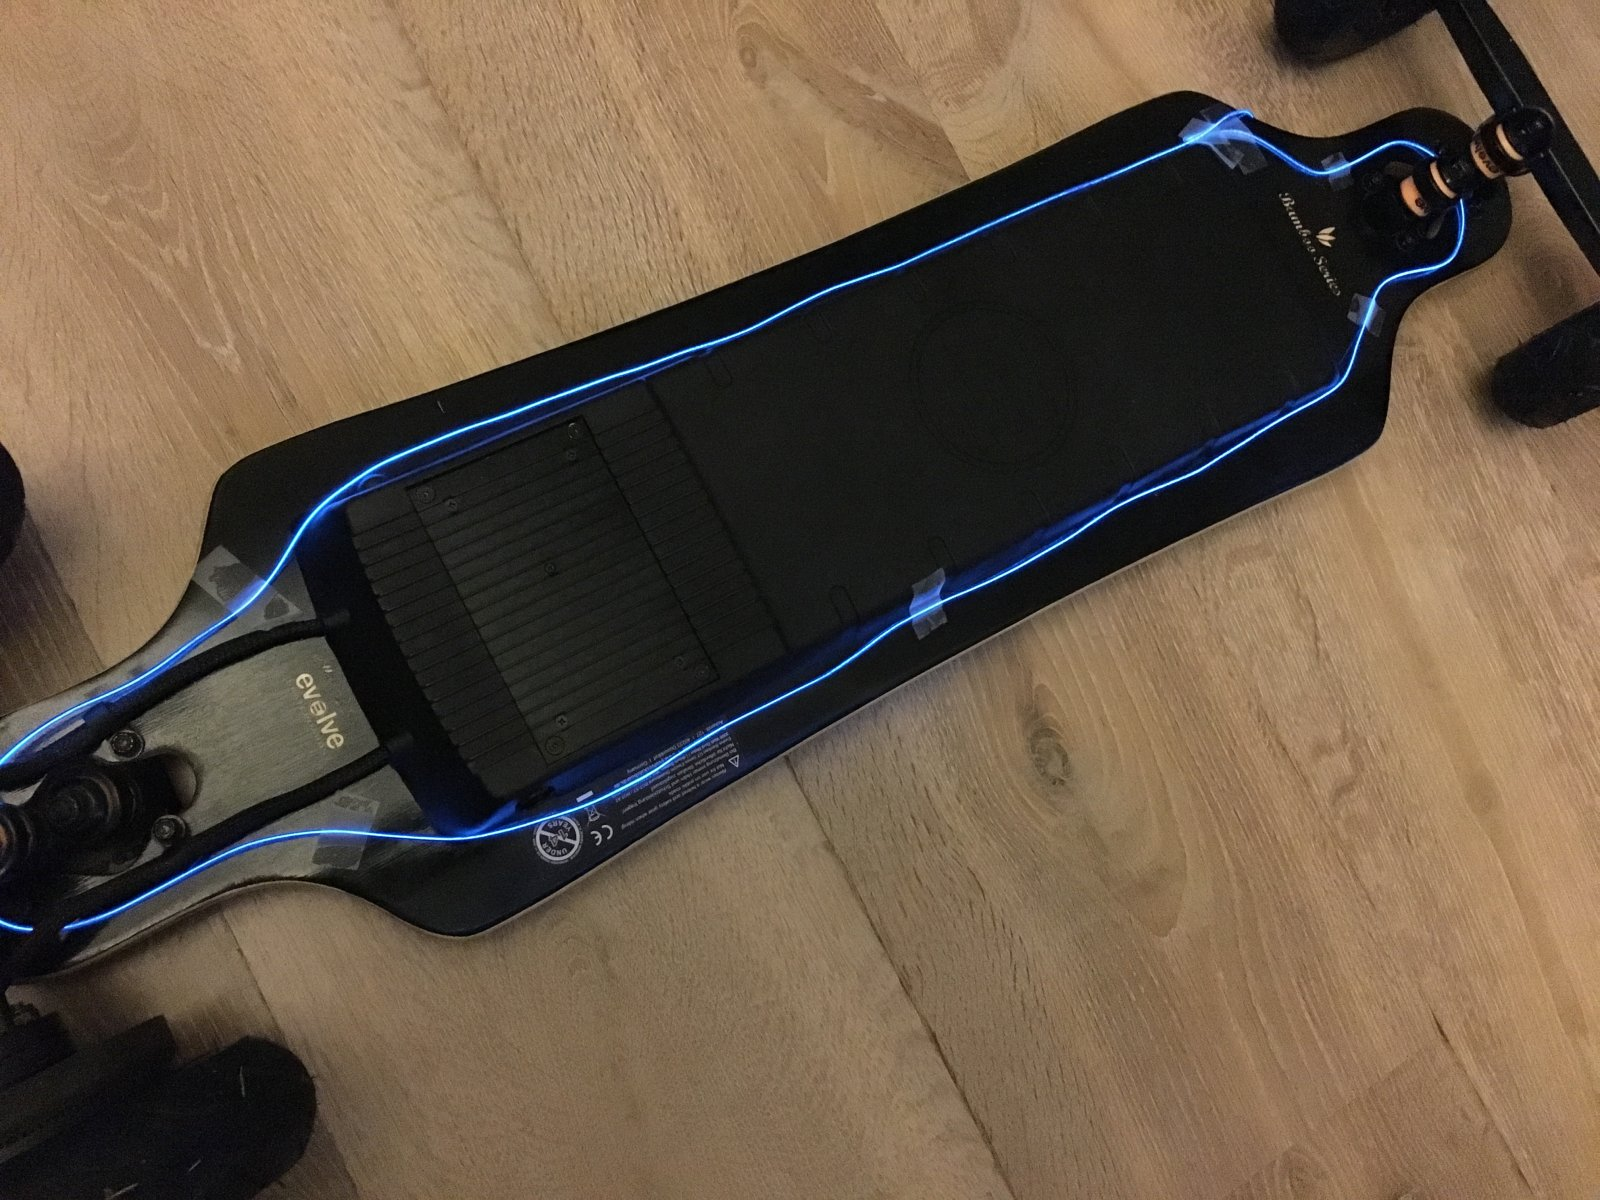 LED Lights for your board | Electric Skateboard Forum